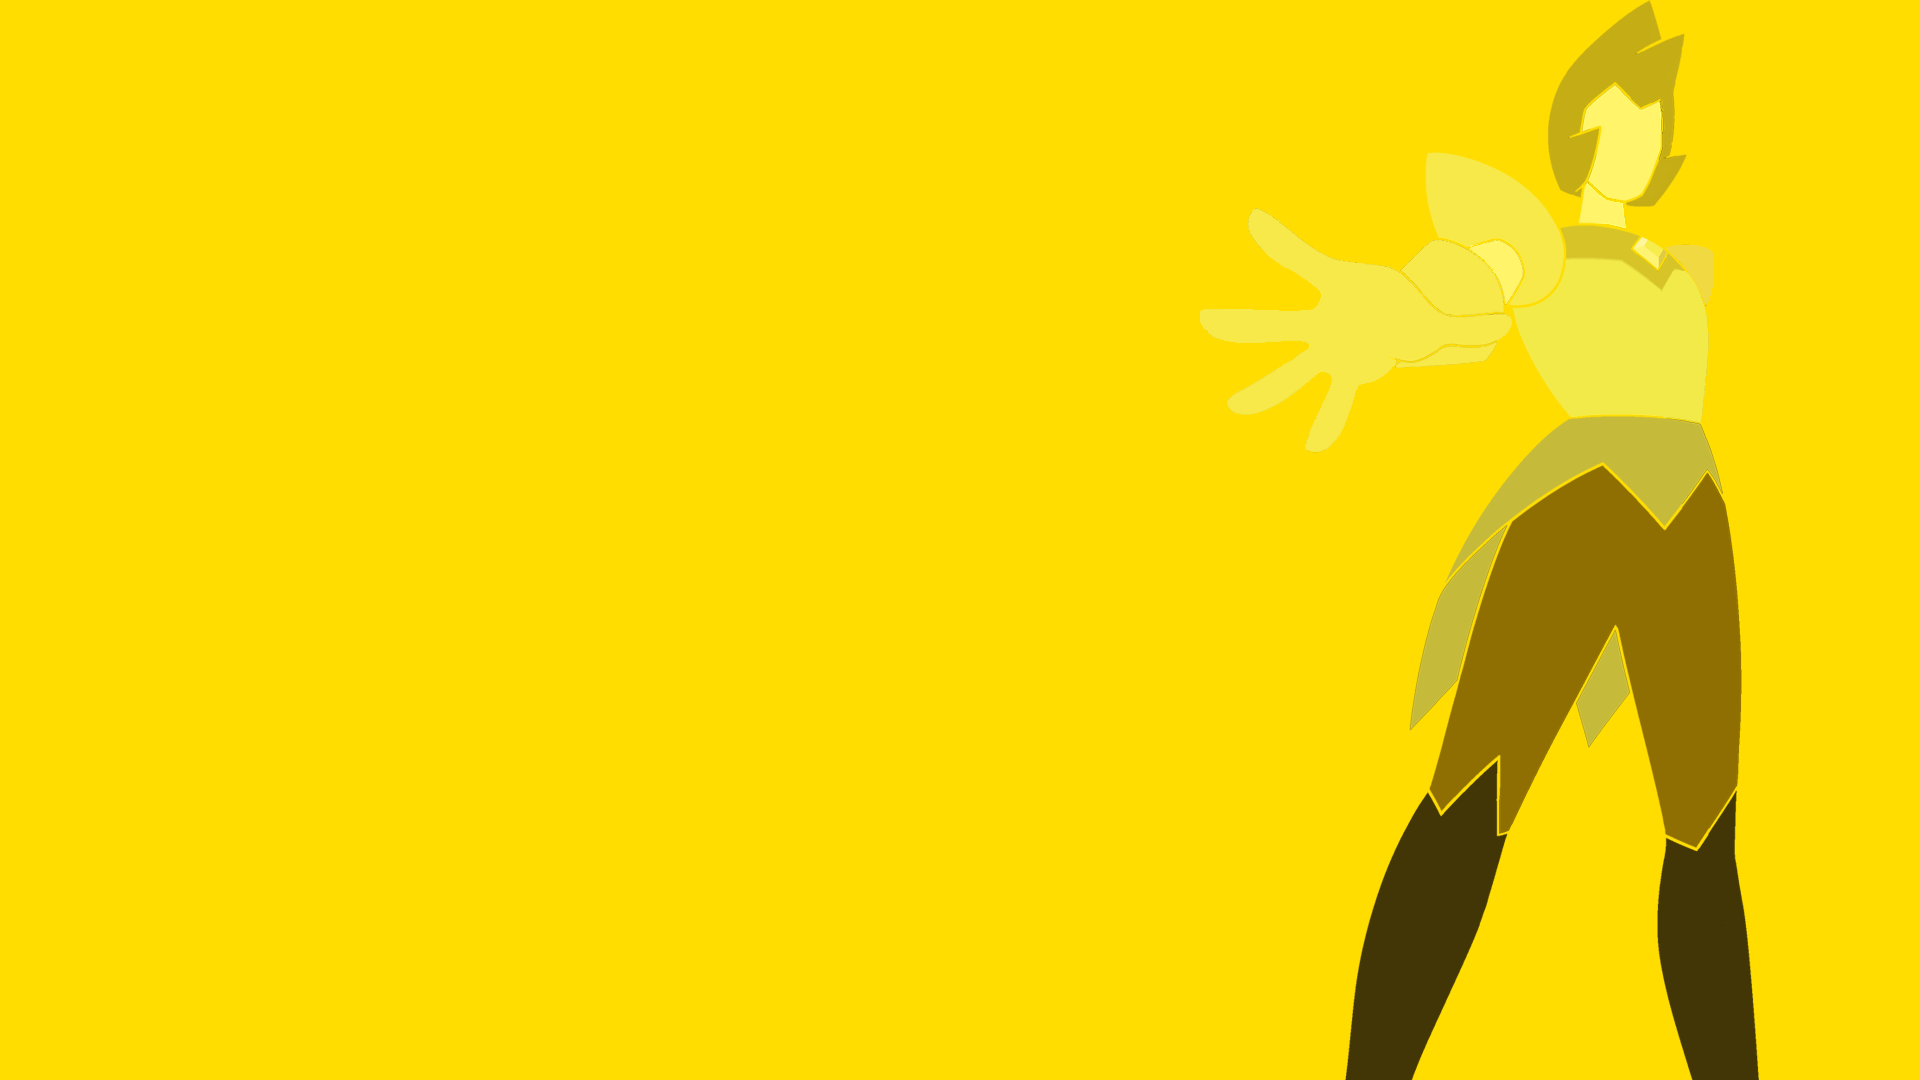 1 17120 minimalist wallpaper of yellow diamond steven universe wallpaper